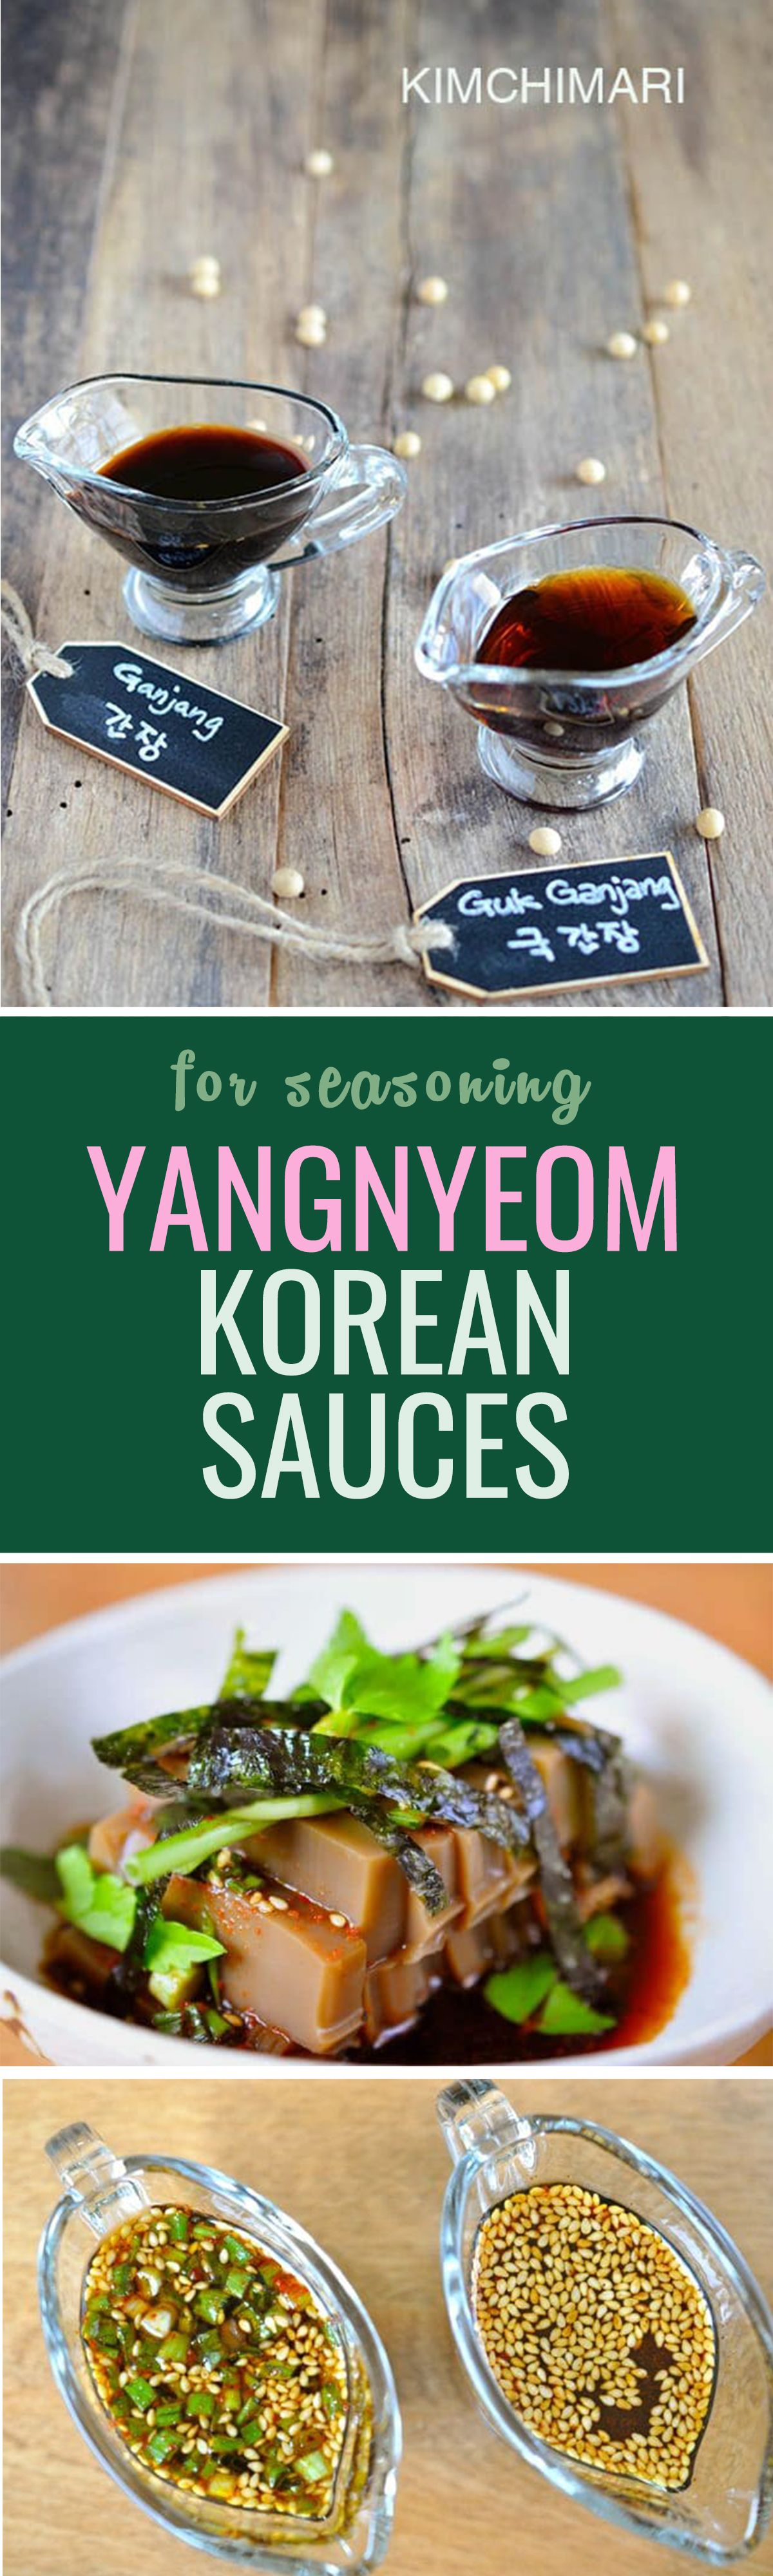 Korean sauces part two, yangnyeomjang! For marinades and seasoning dishes :)